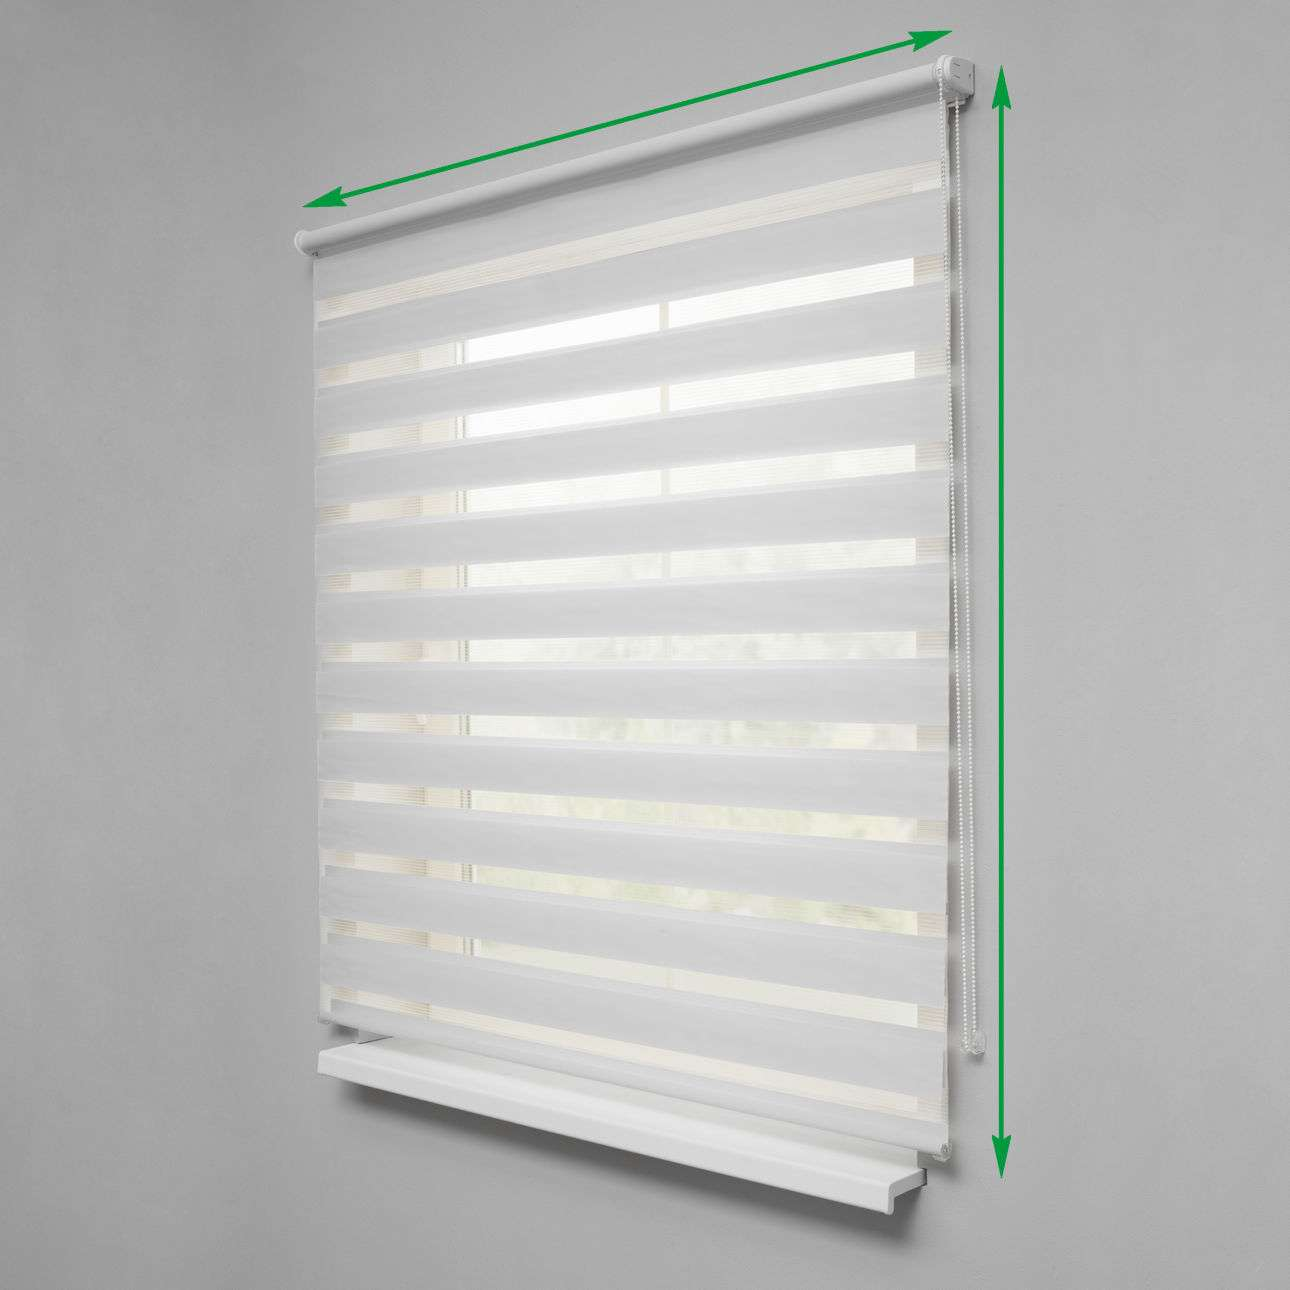 Day & Night Venetian roller blind in collection Roller blinds Day & Night (Venetian blind), fabric: 0101